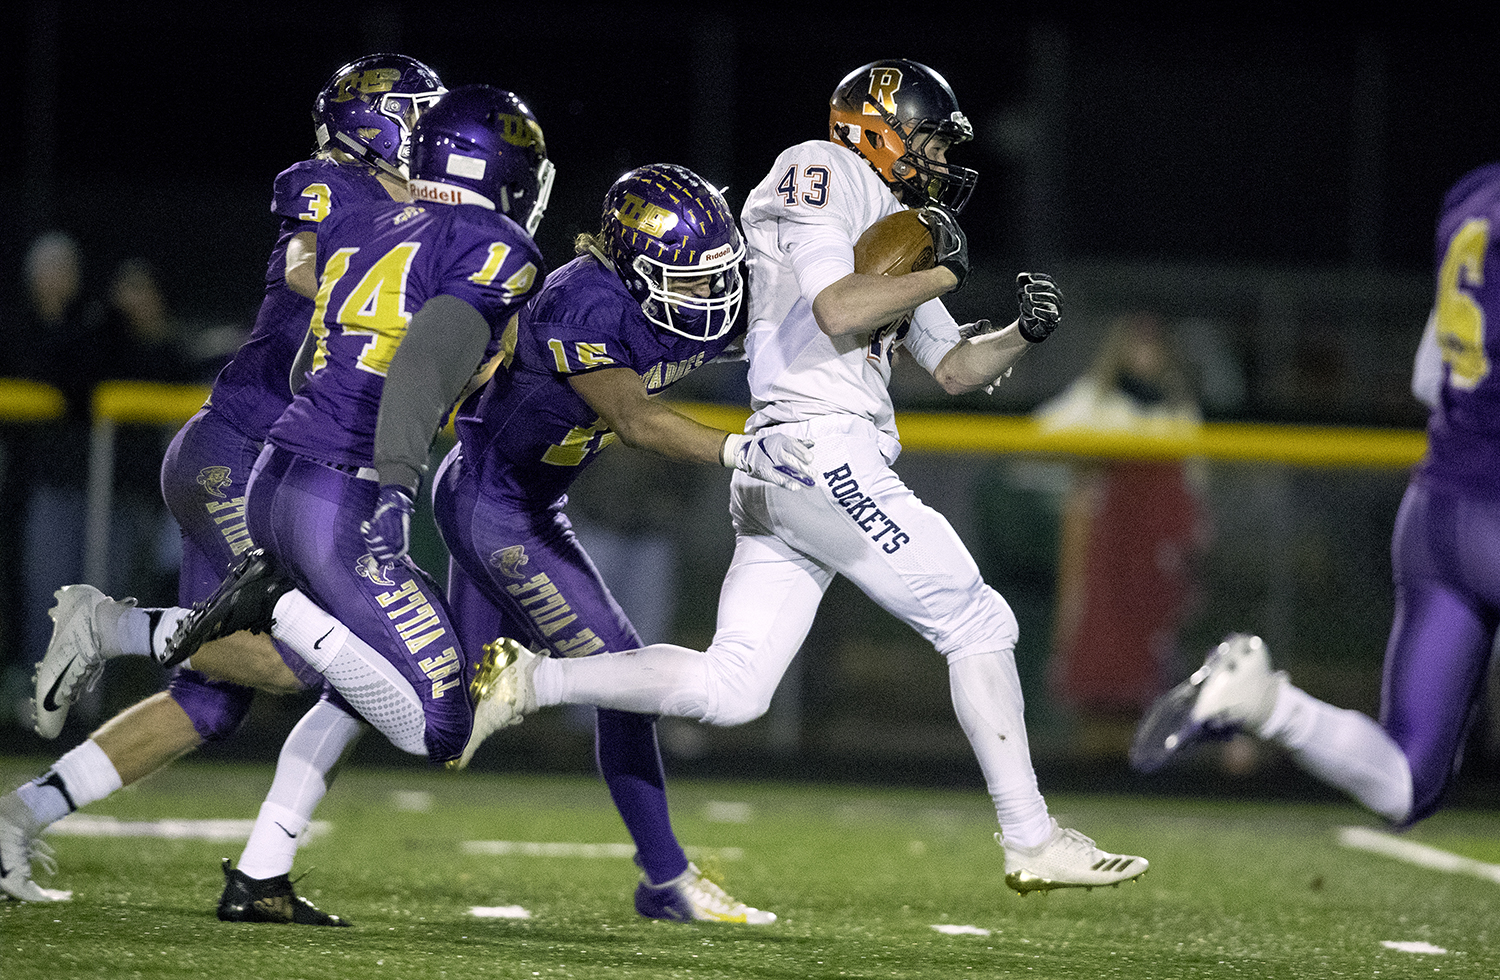 Rochester's Jacob DuRocher sprints ahead of the Taylorville defense during the Class 4A quarterfinals in Taylorville Saturday, Nov. 10, 2018. [Ted Schurter/The State Journal-Register]